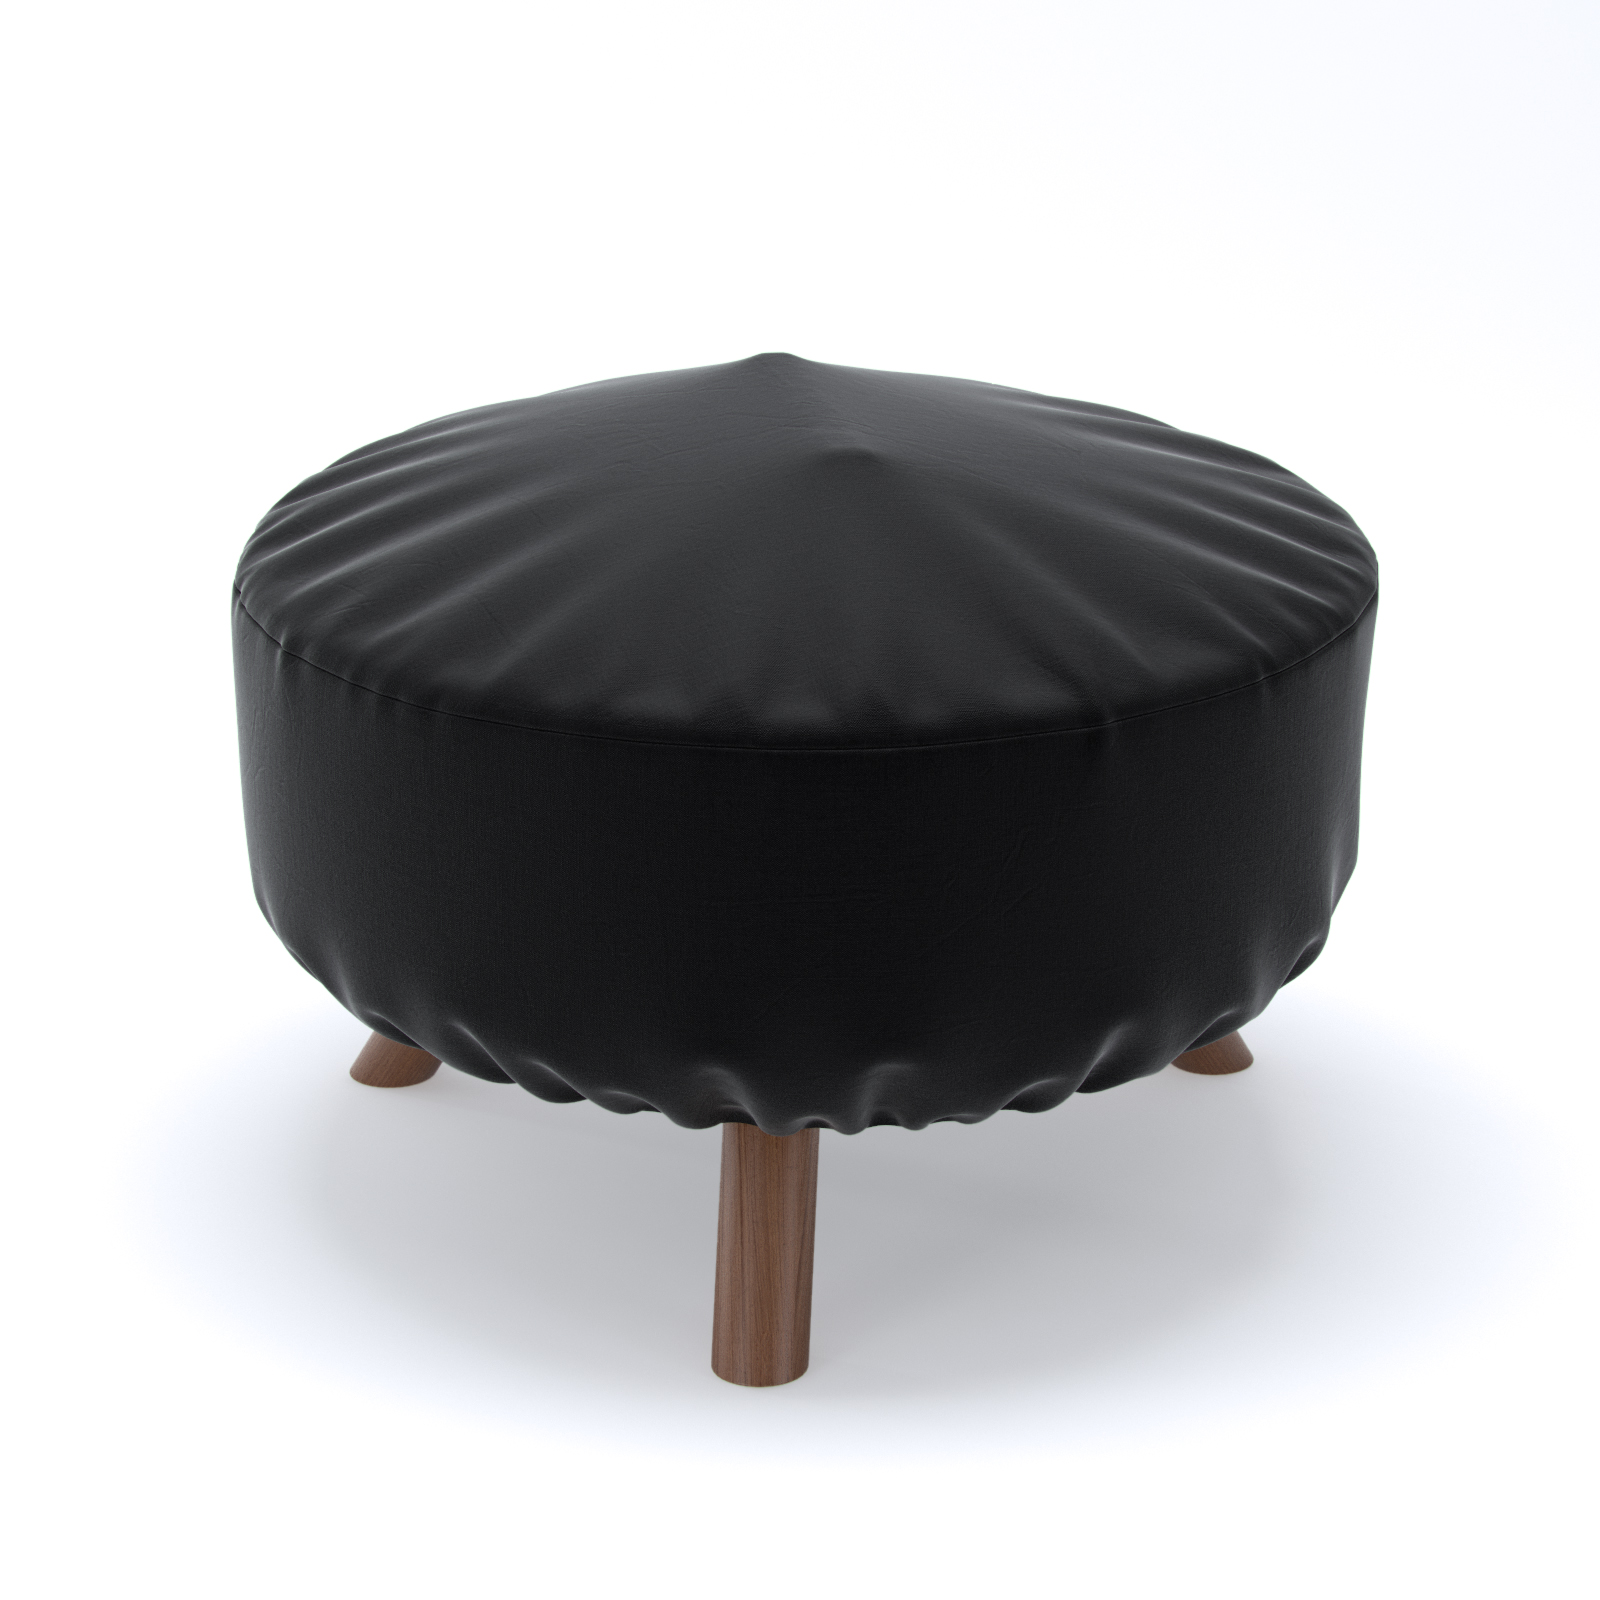 Dura Covers 32 Inch Black Heavy Duty Round Fire Pit Cover Durable And Water Resistant Firepit